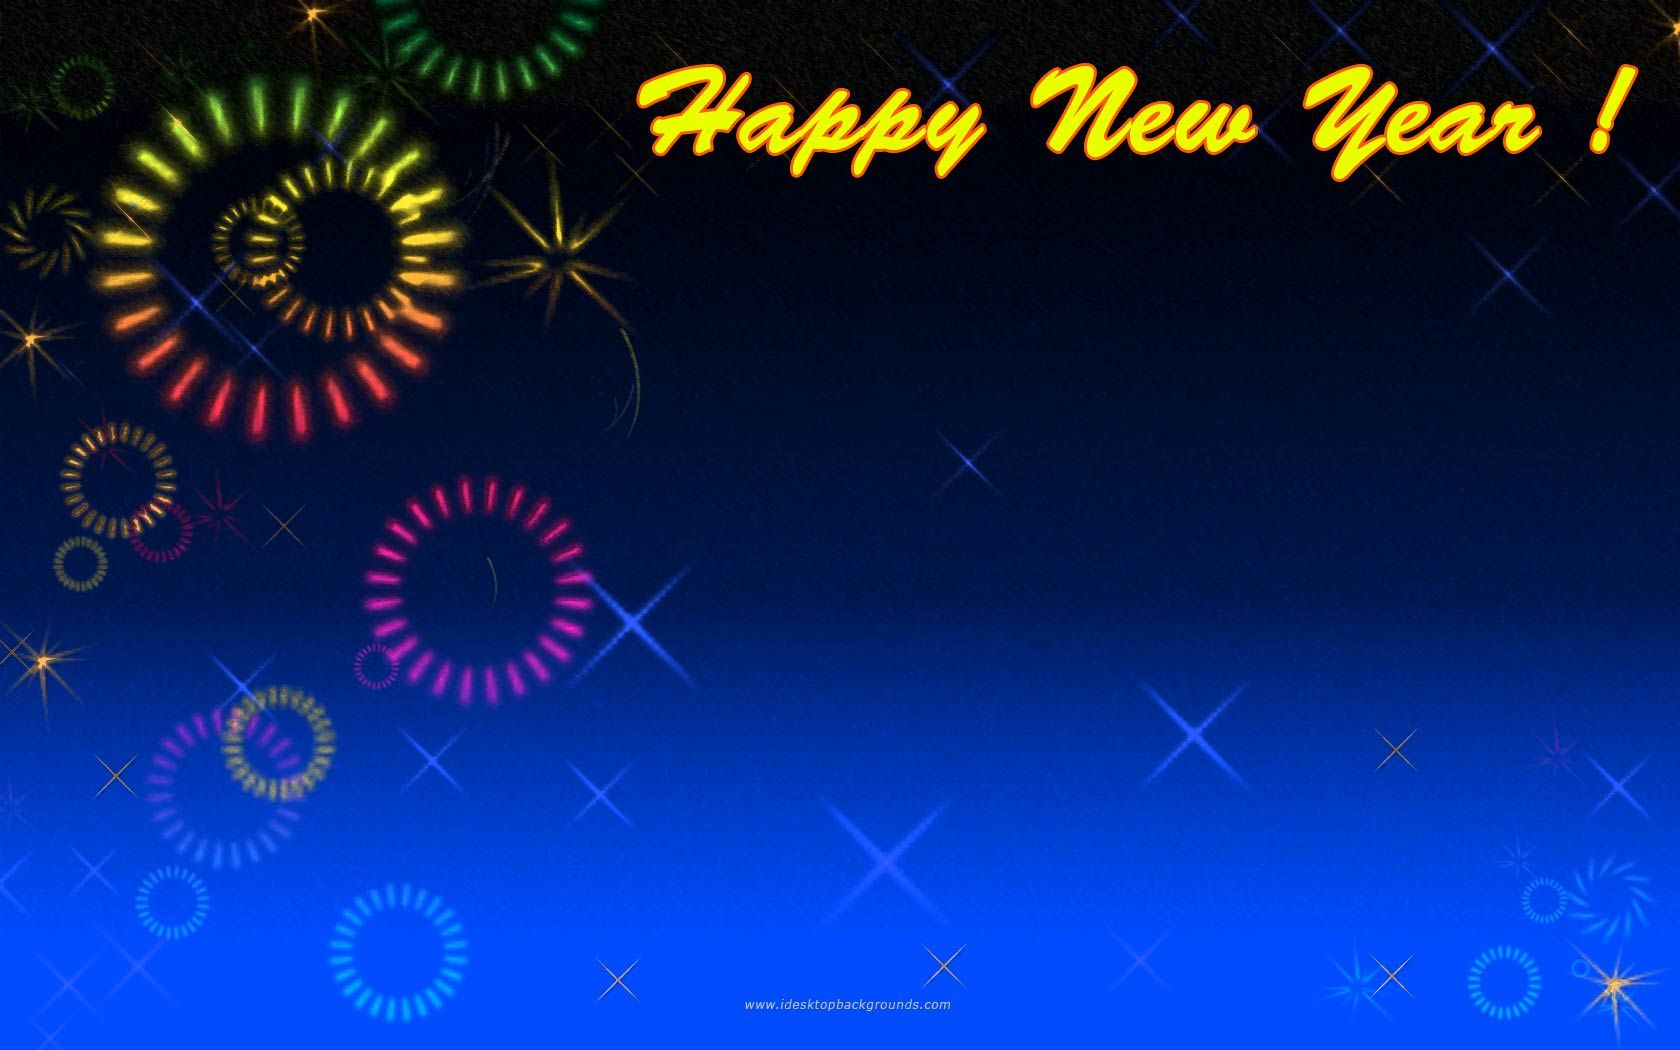 Happy New Year Background Wallpapers at http//www